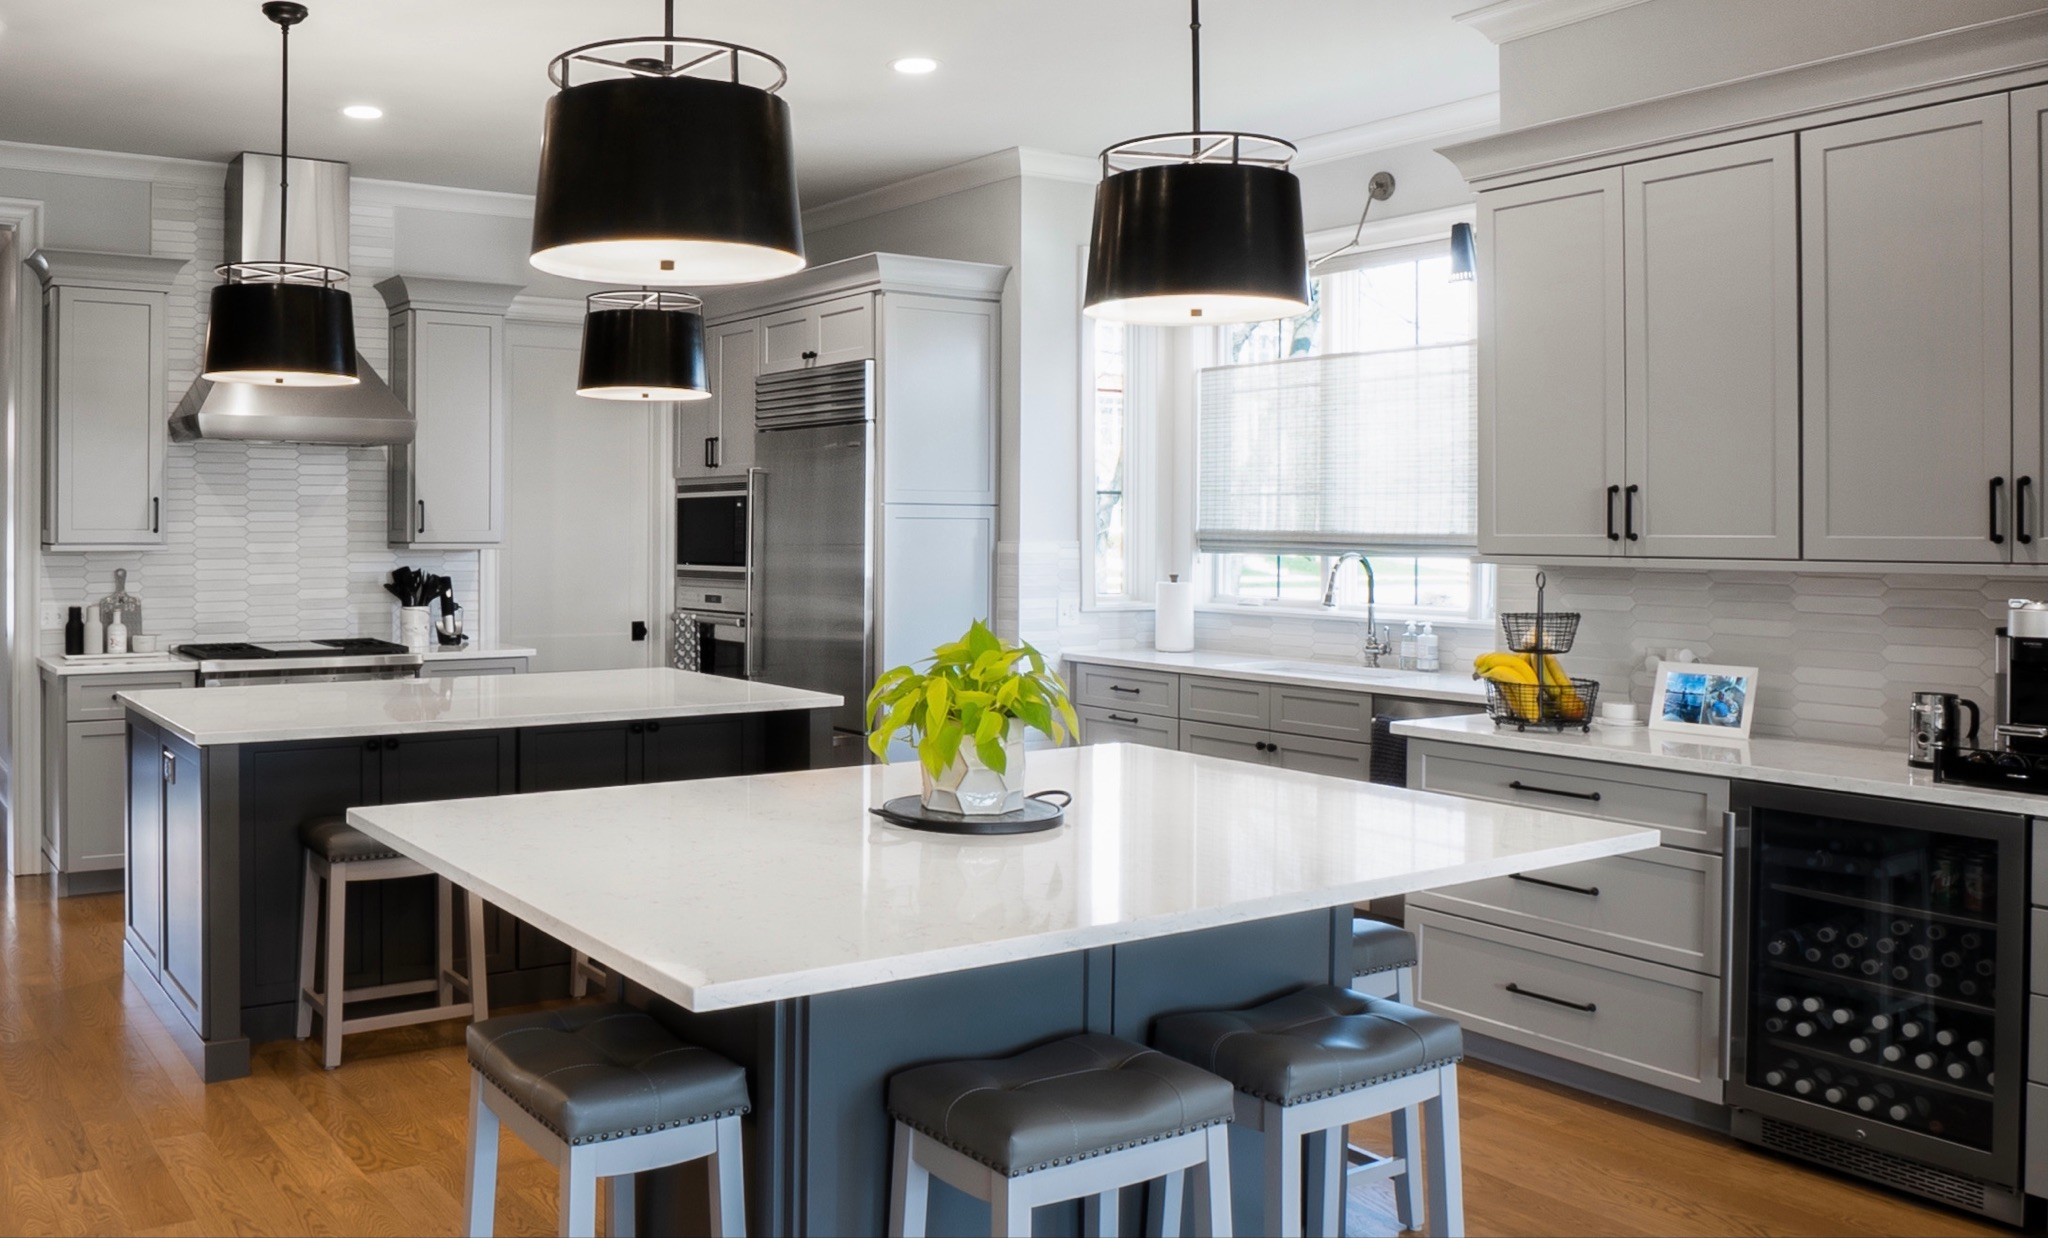 Kitchen featuring white cabinetry, stainless steel appliances, double islands with contrasting gray cabinetry and large, black drum pendant lights.